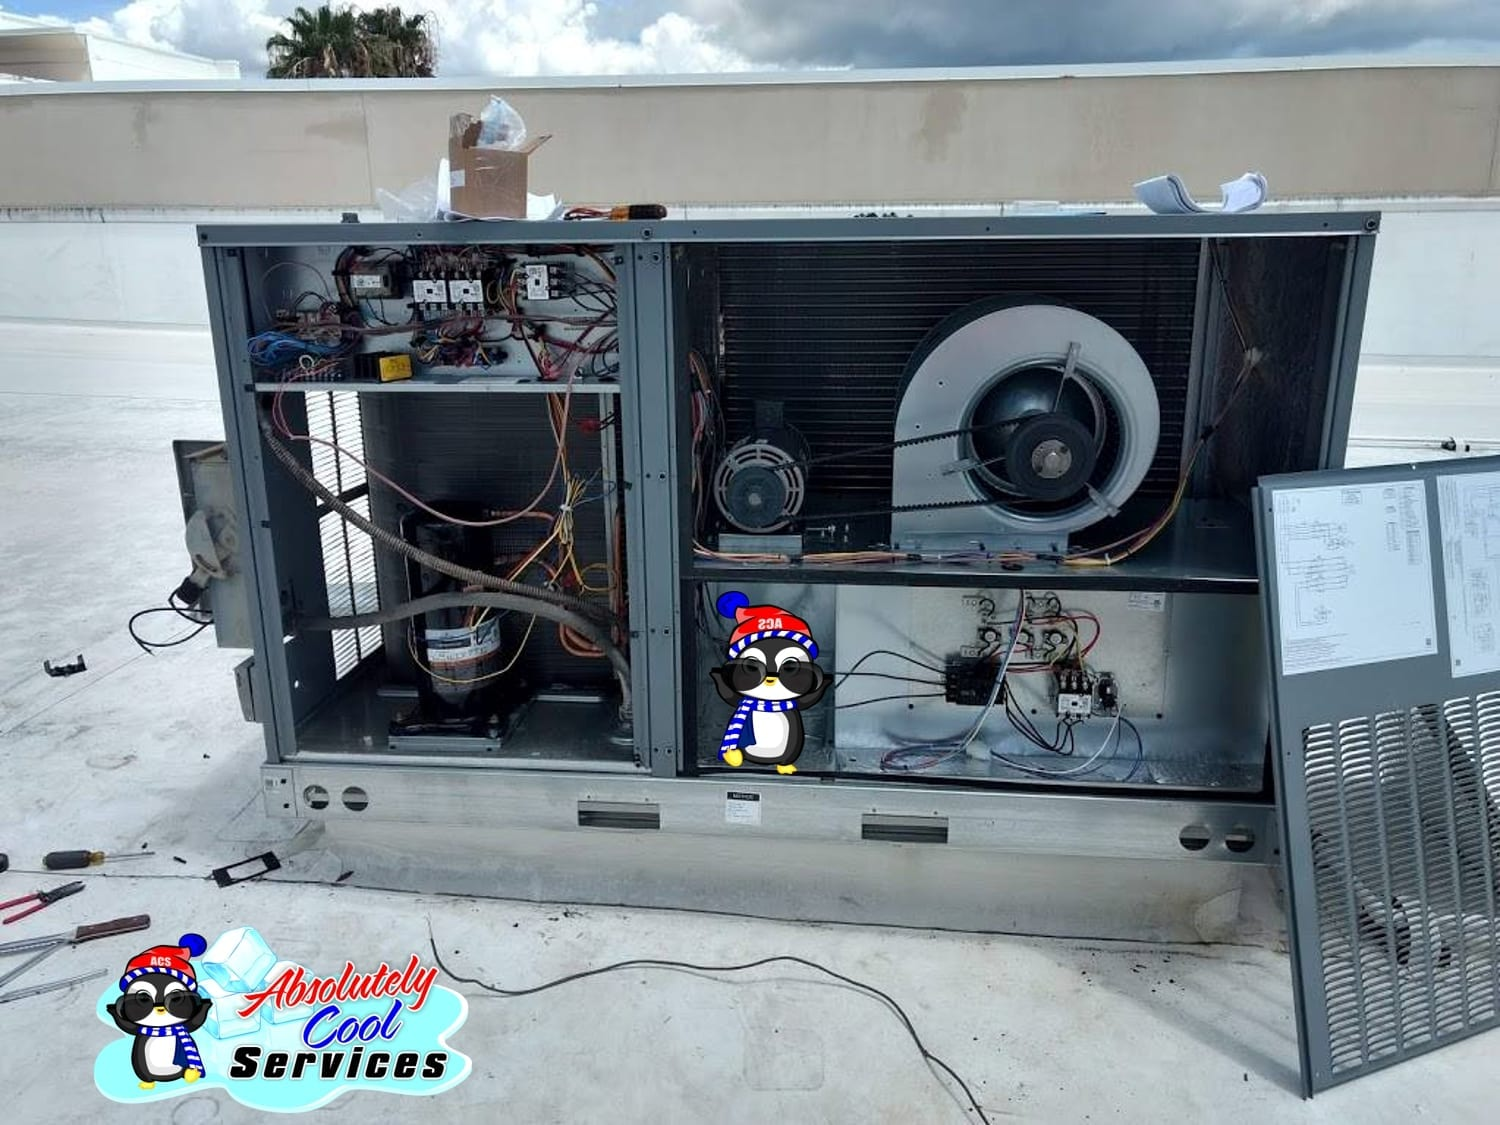 Roof Air Conditioning | Emergency Air Conditioning Installation Company near West Palm Beach